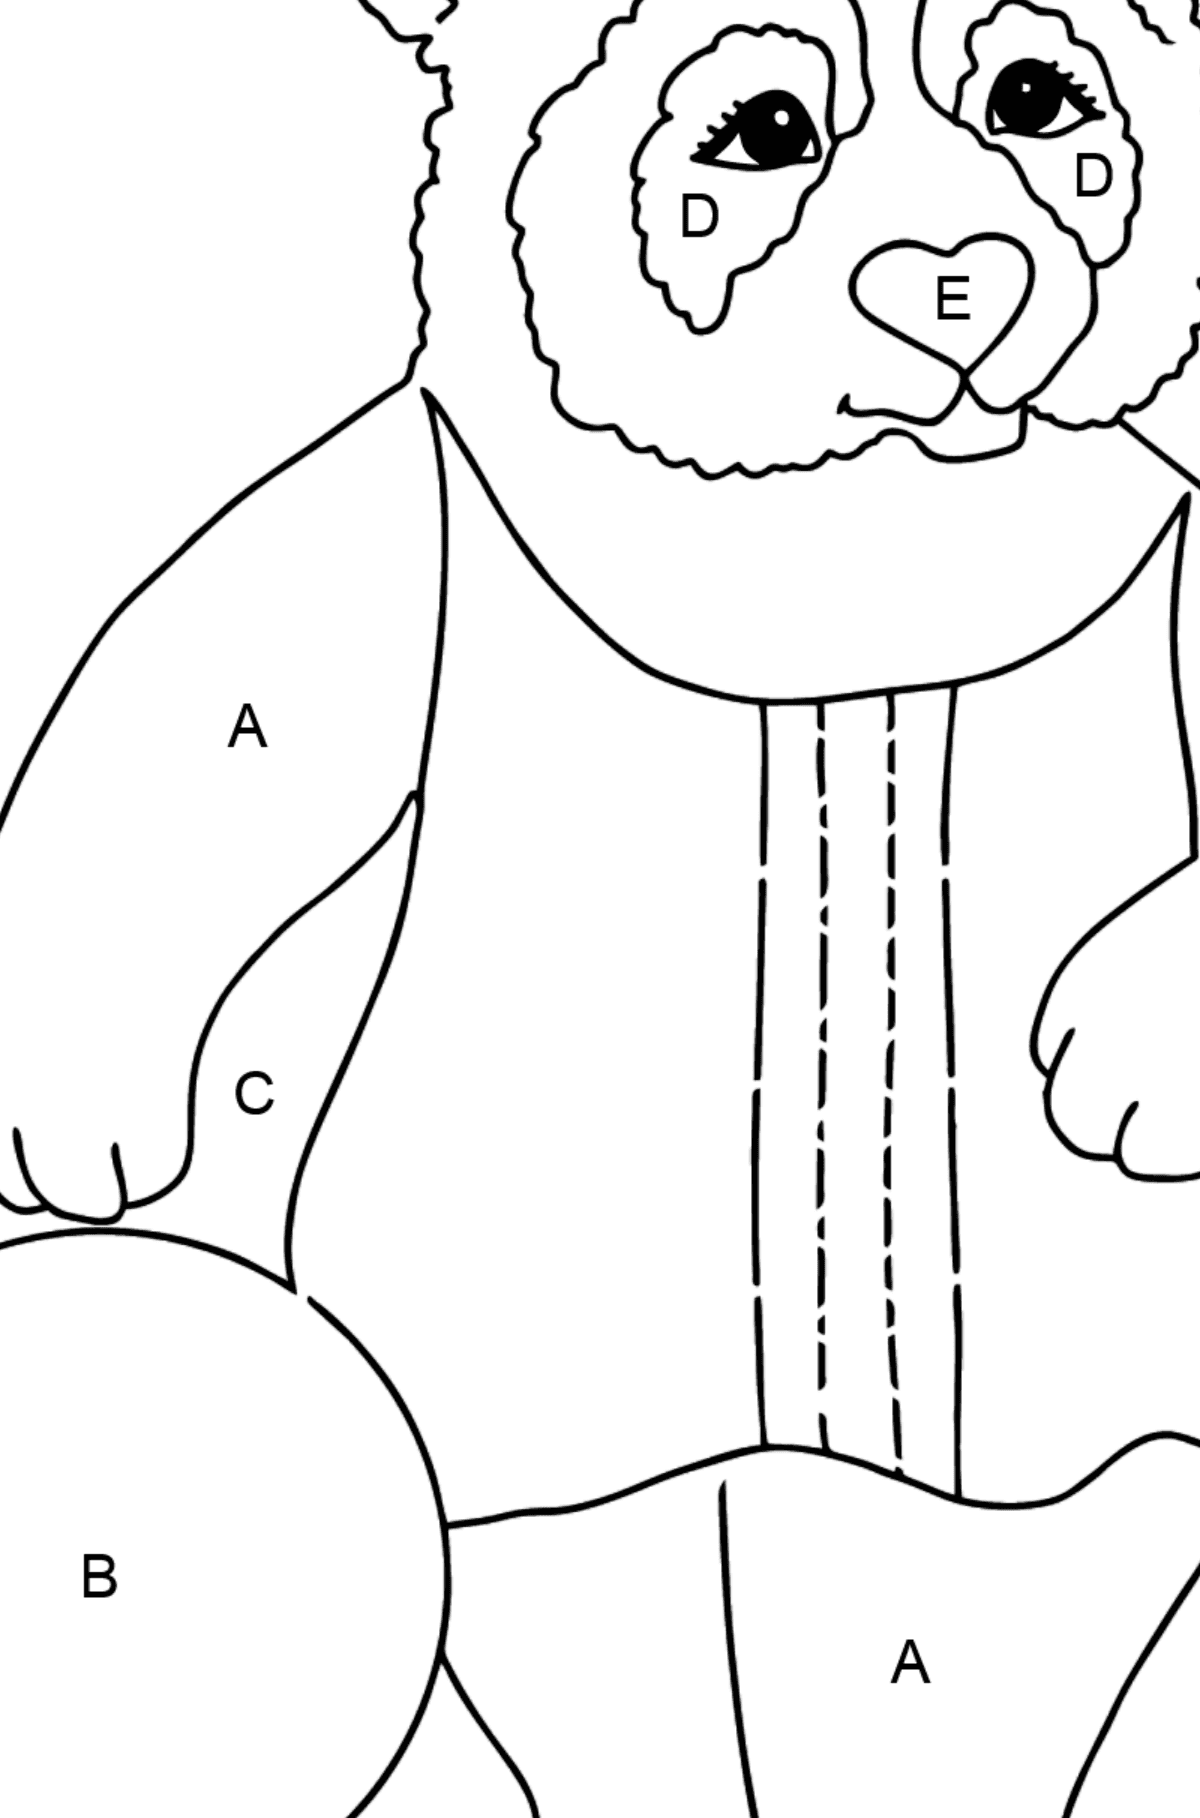 Coloring Picture - A Panda is Playing Ball - Coloring by Letters for Kids